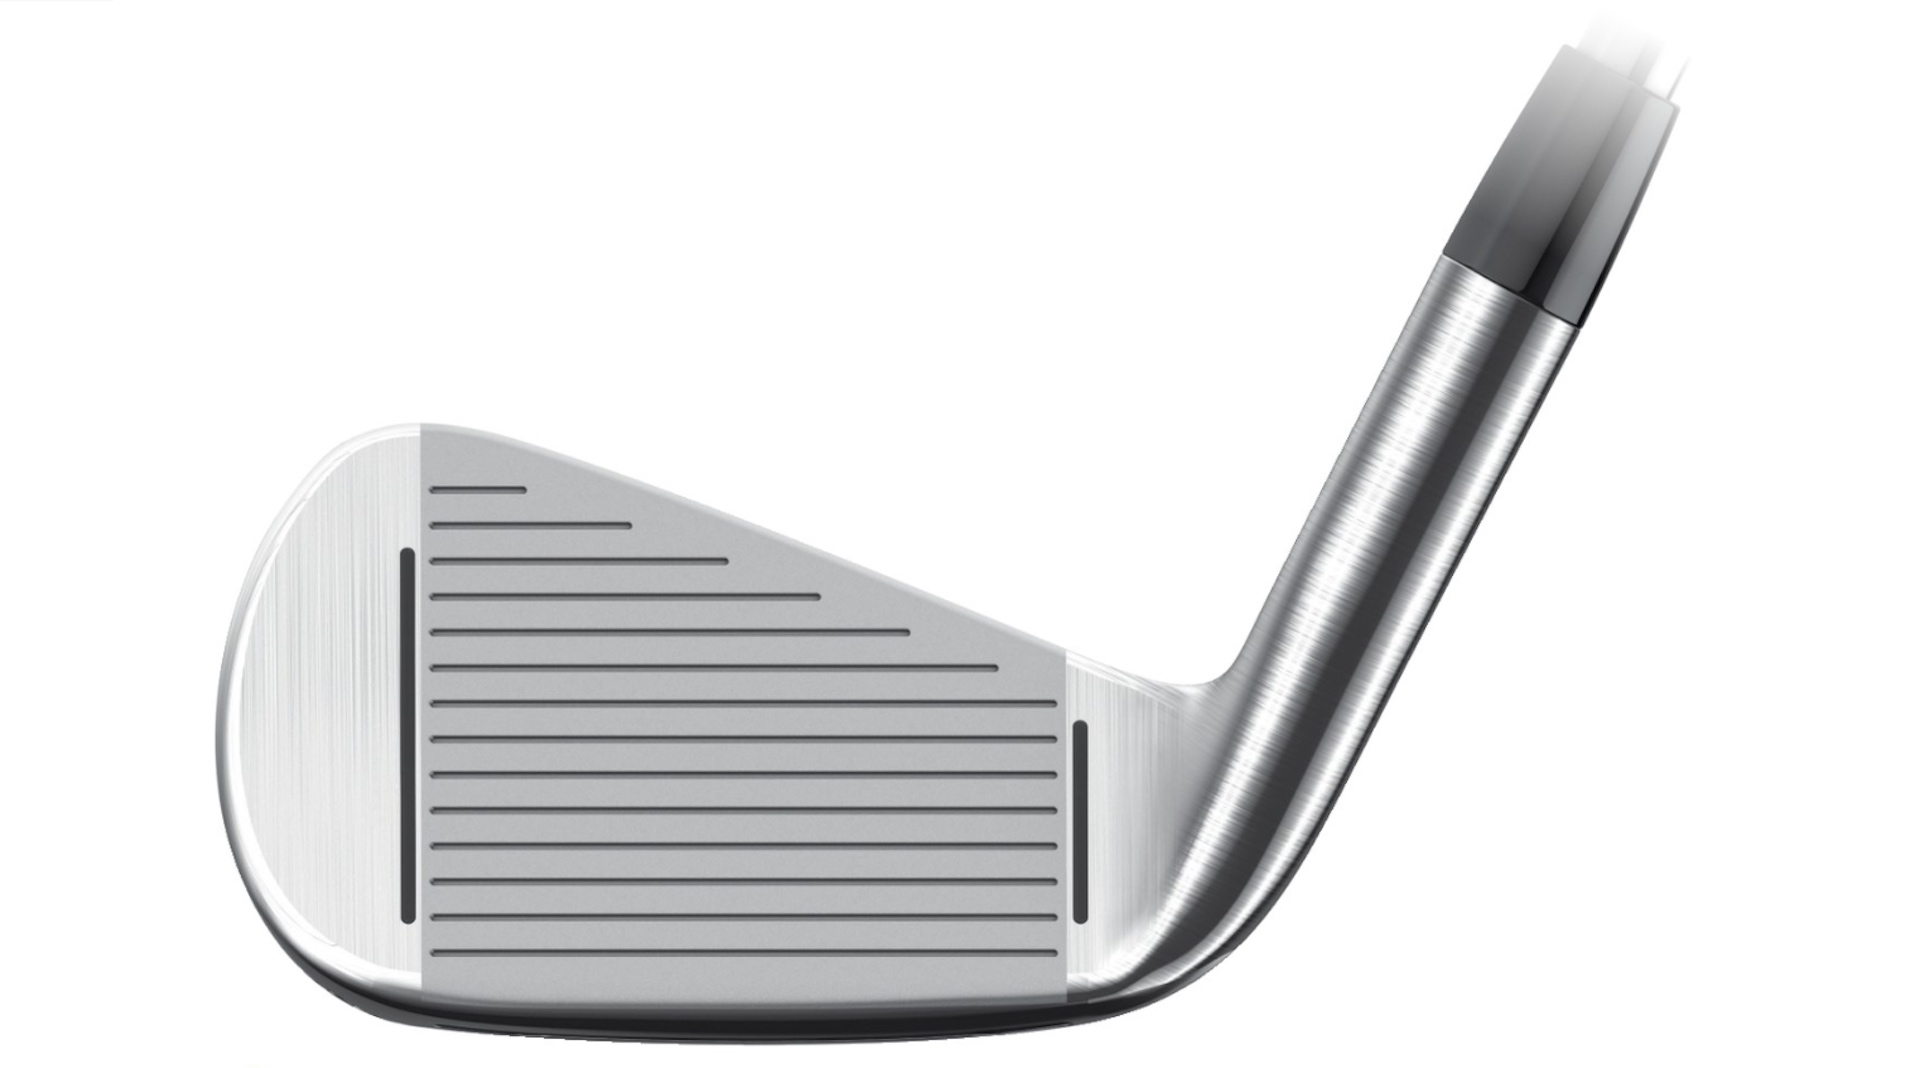 TaylorMade launch new M1 irons